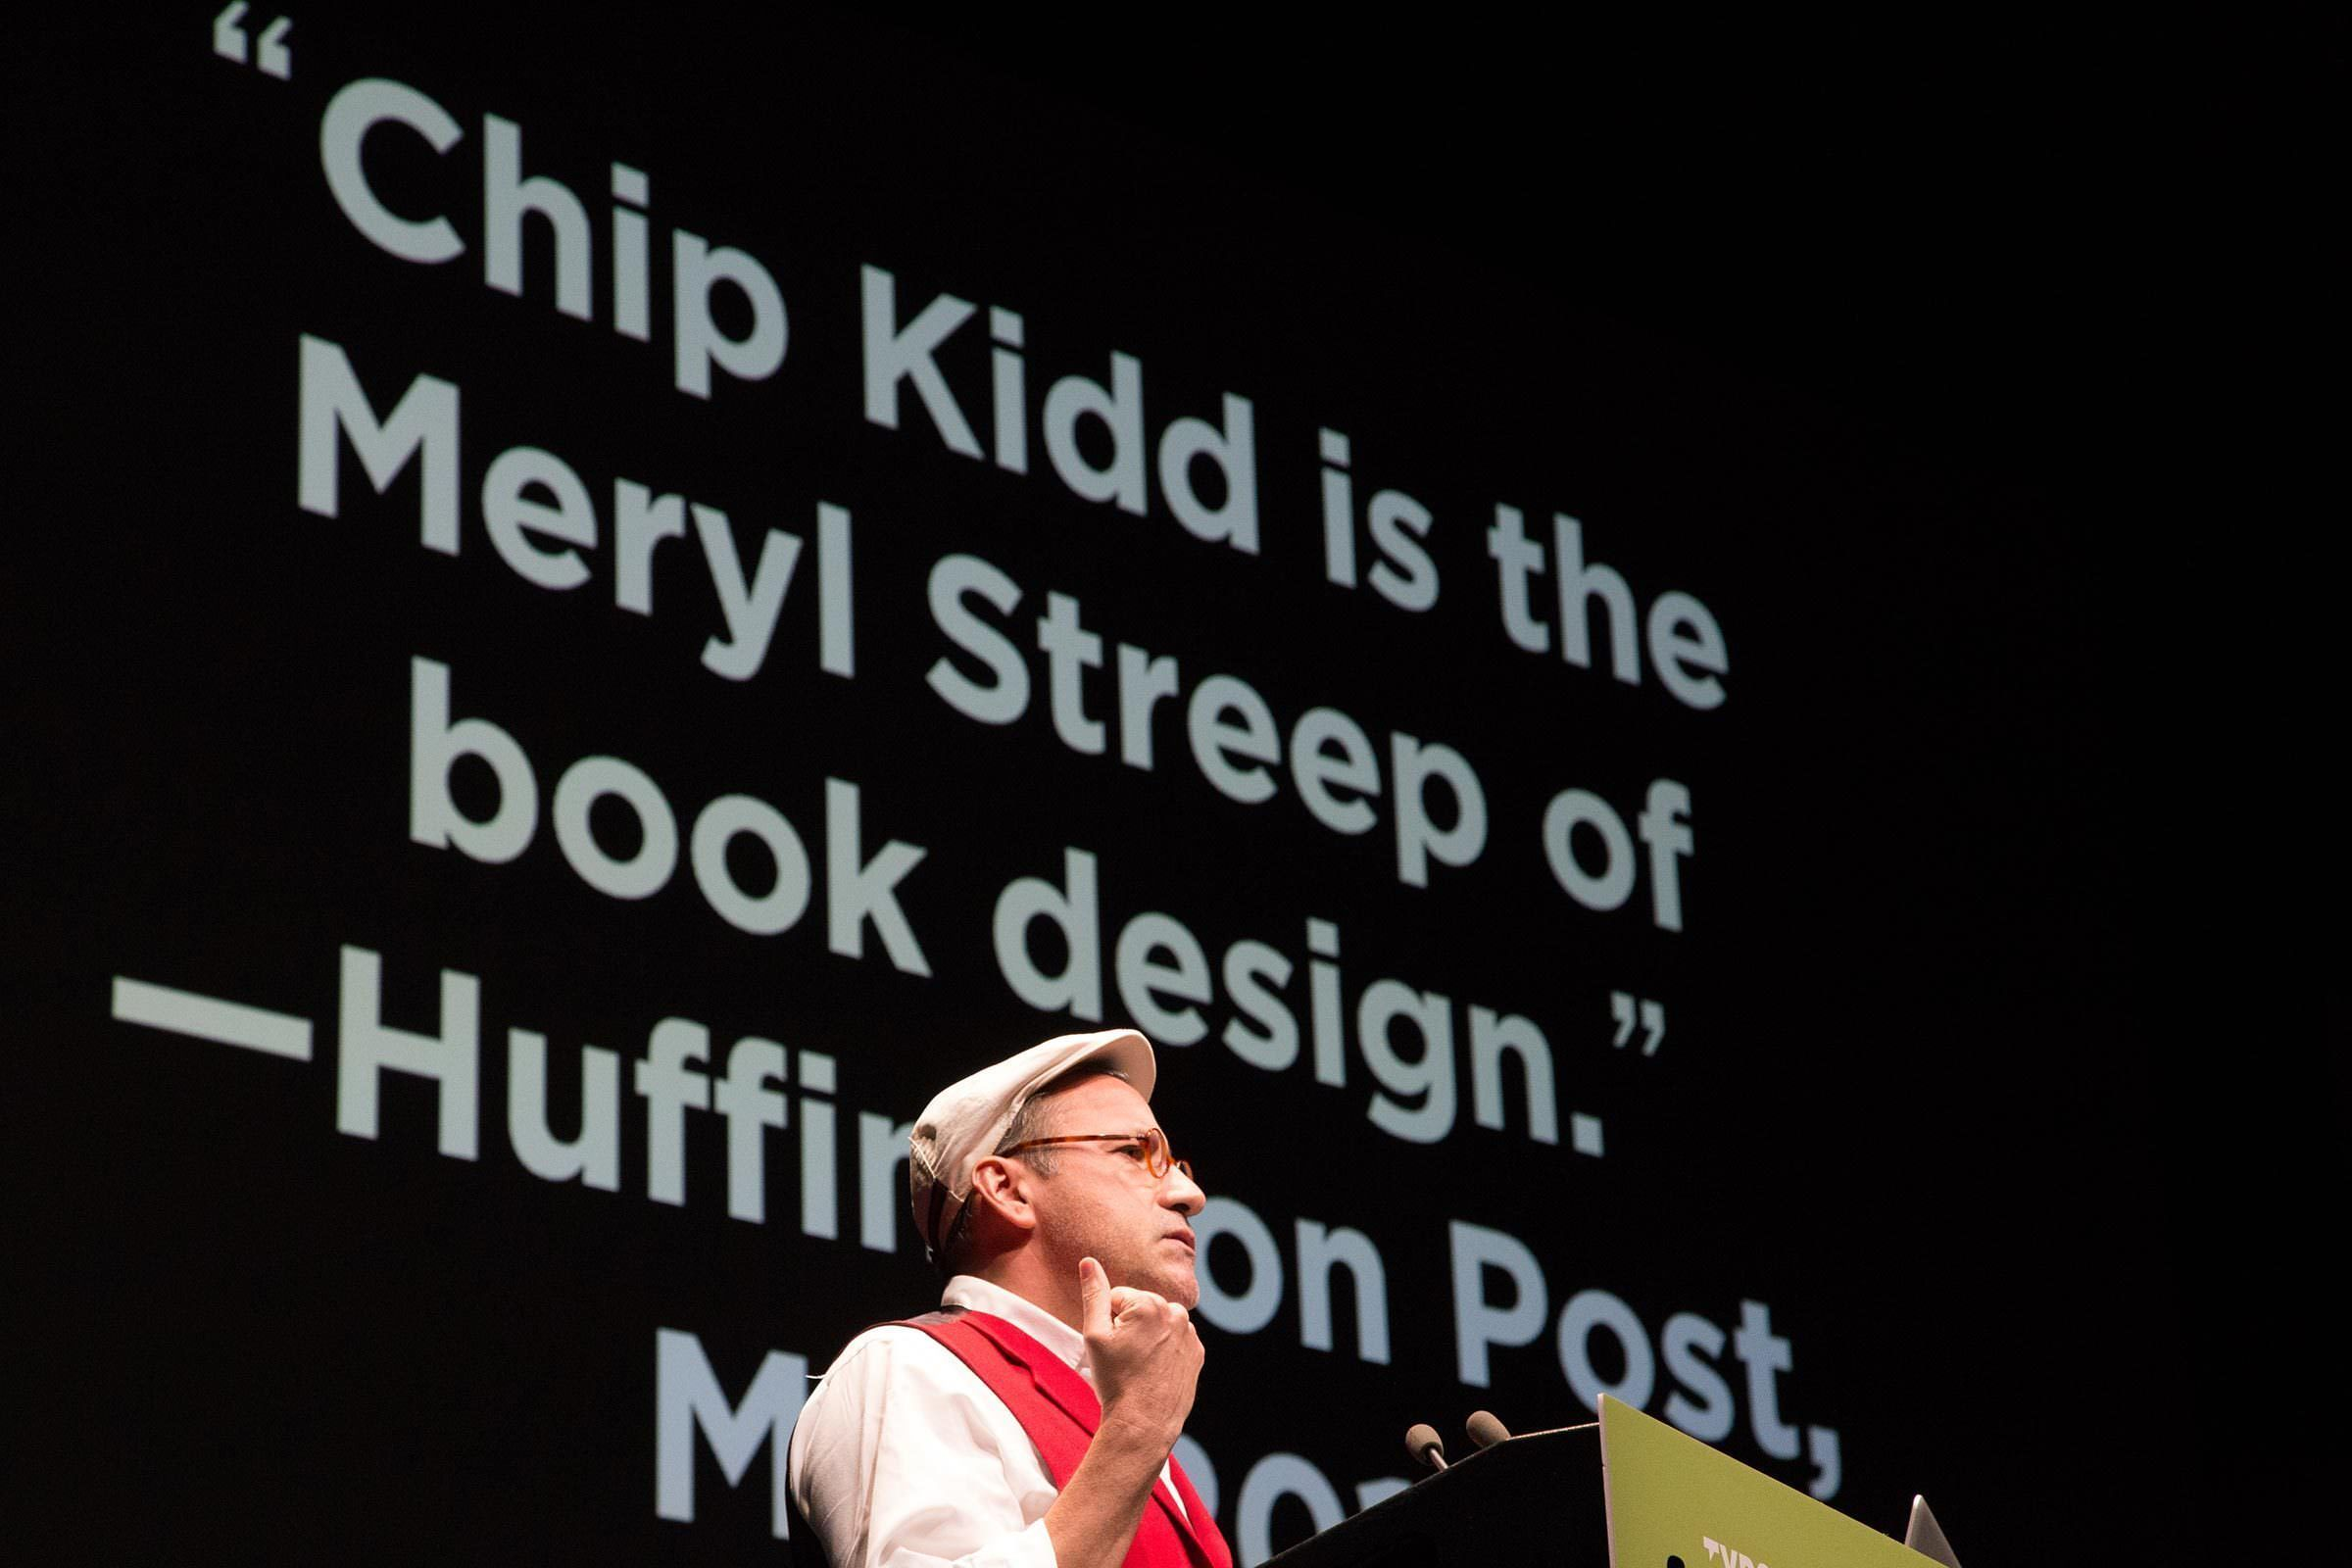 Chip Kidd Meryl Streep of Book Design